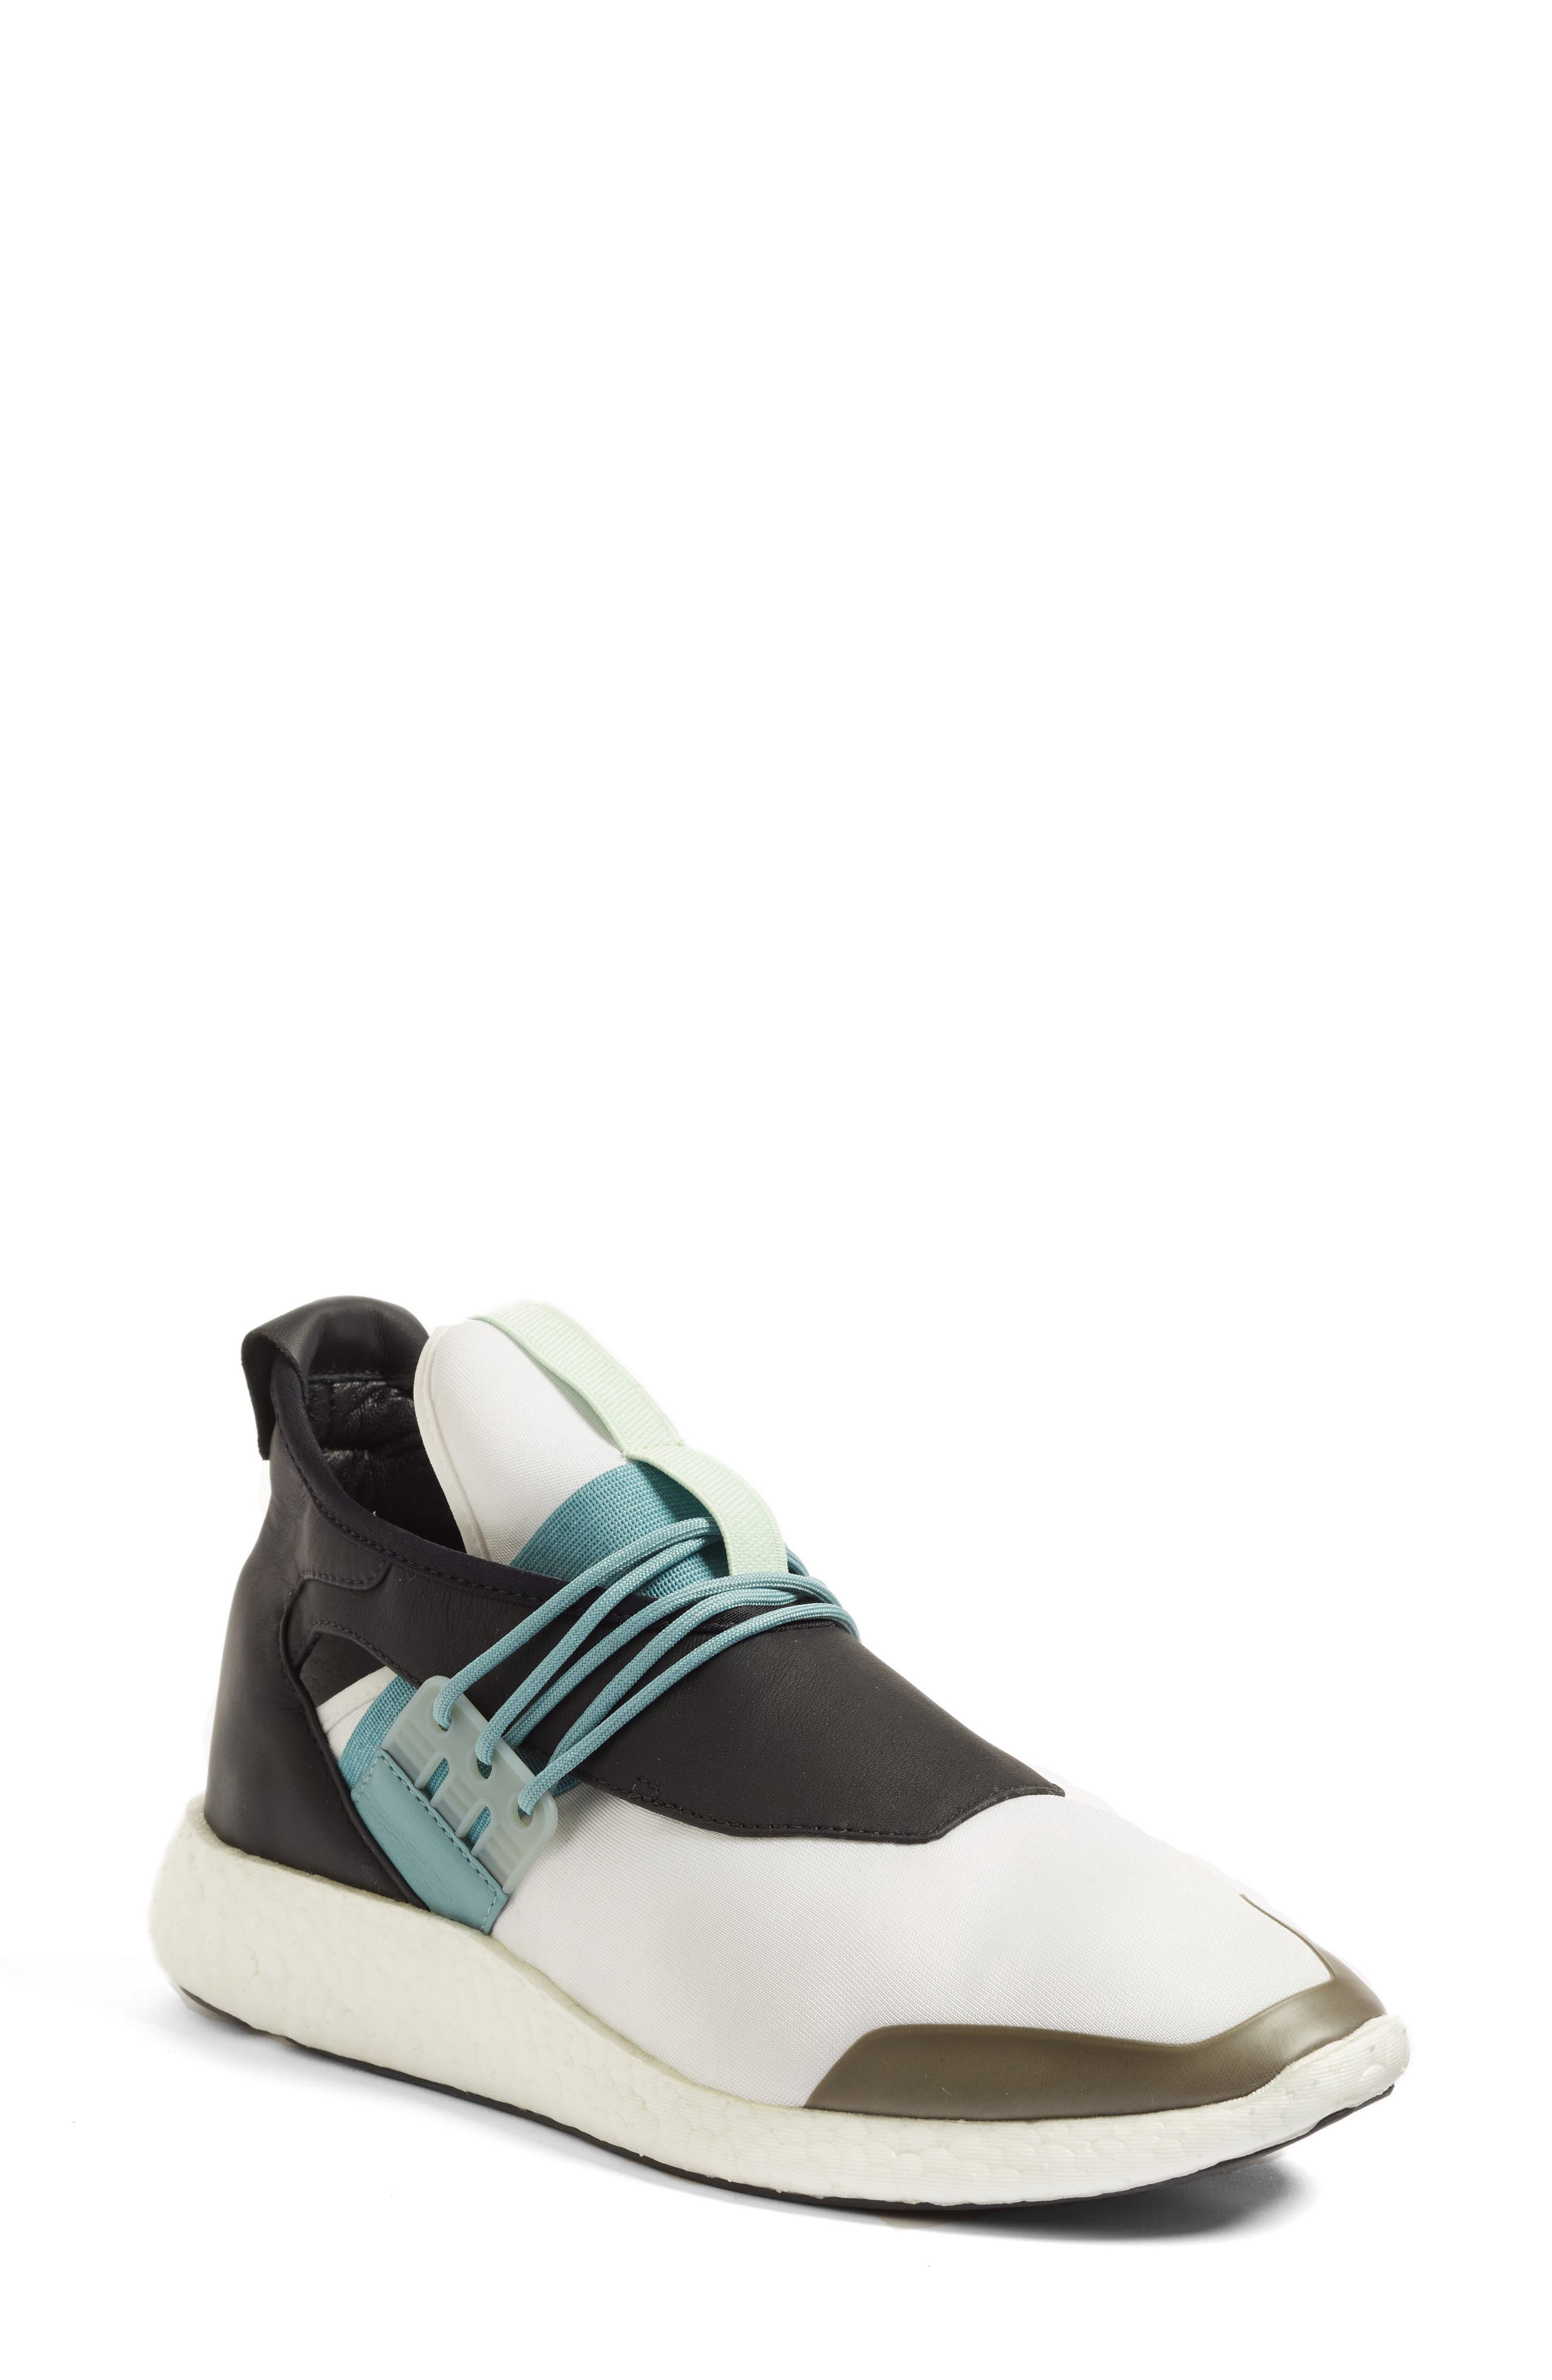 Elle Run Sneaker,                             Main thumbnail 3, color,